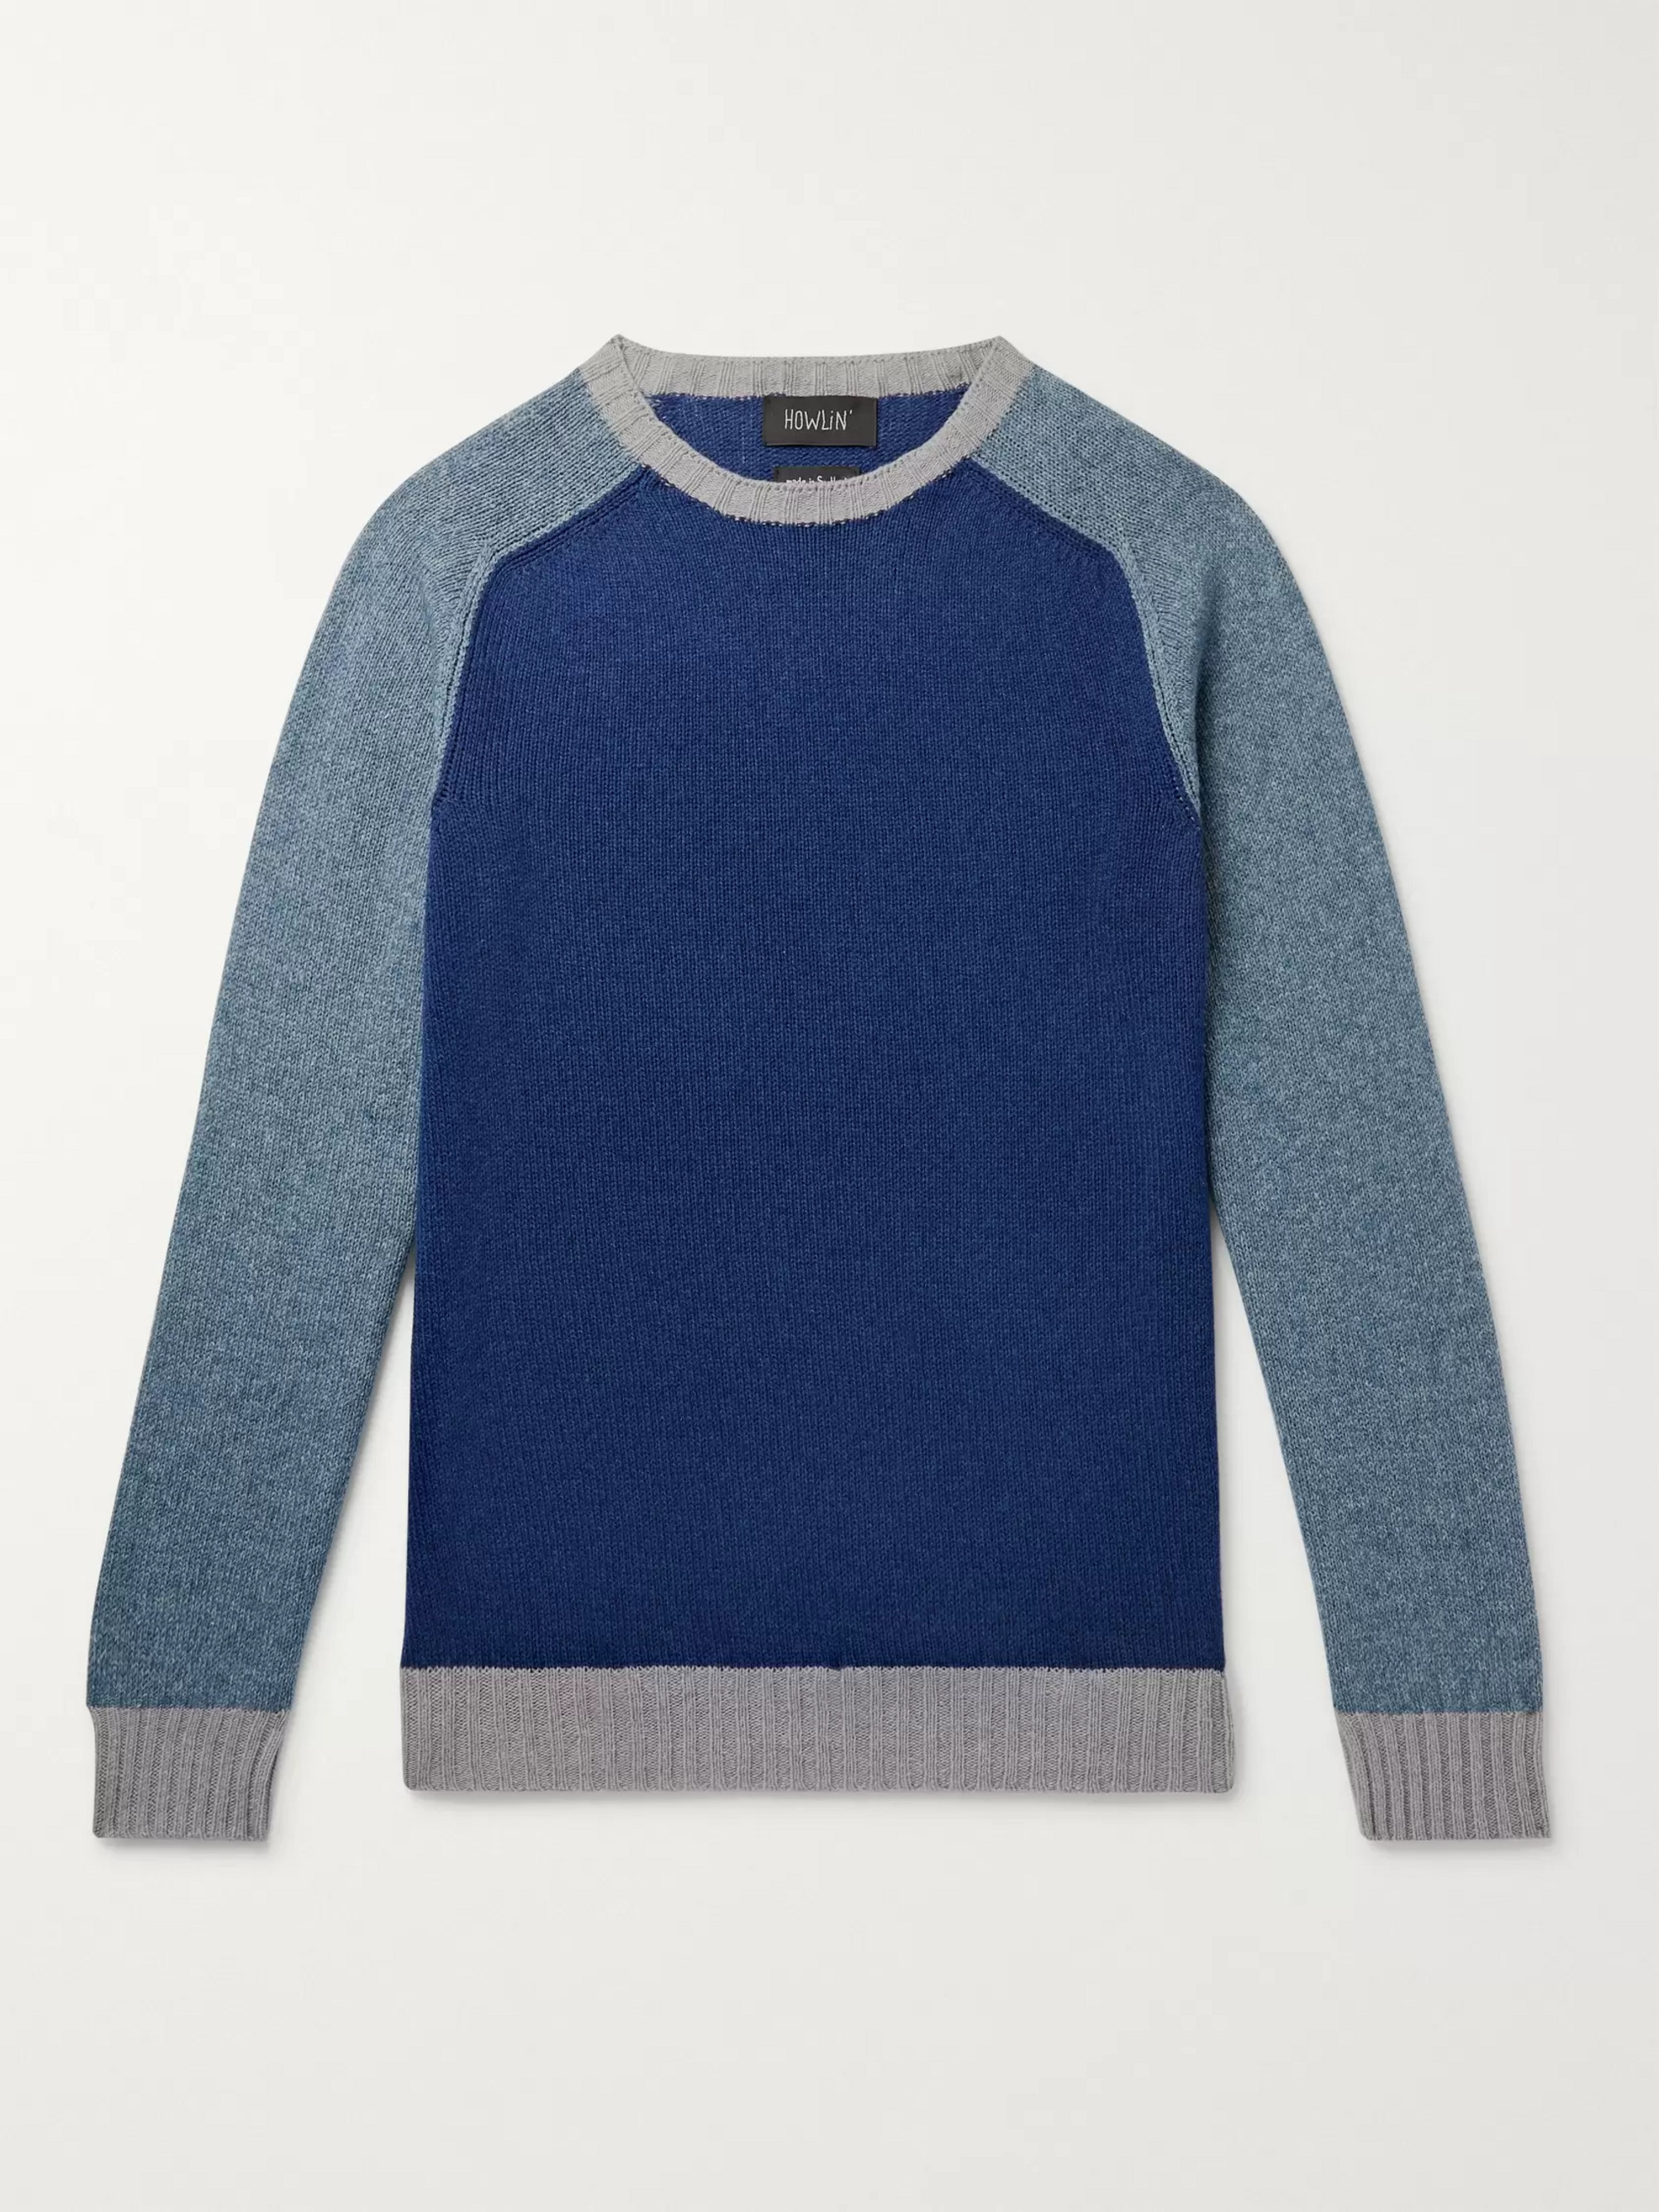 Howlin' Colour-Block Lambswool And Cotton-Blend Sweater